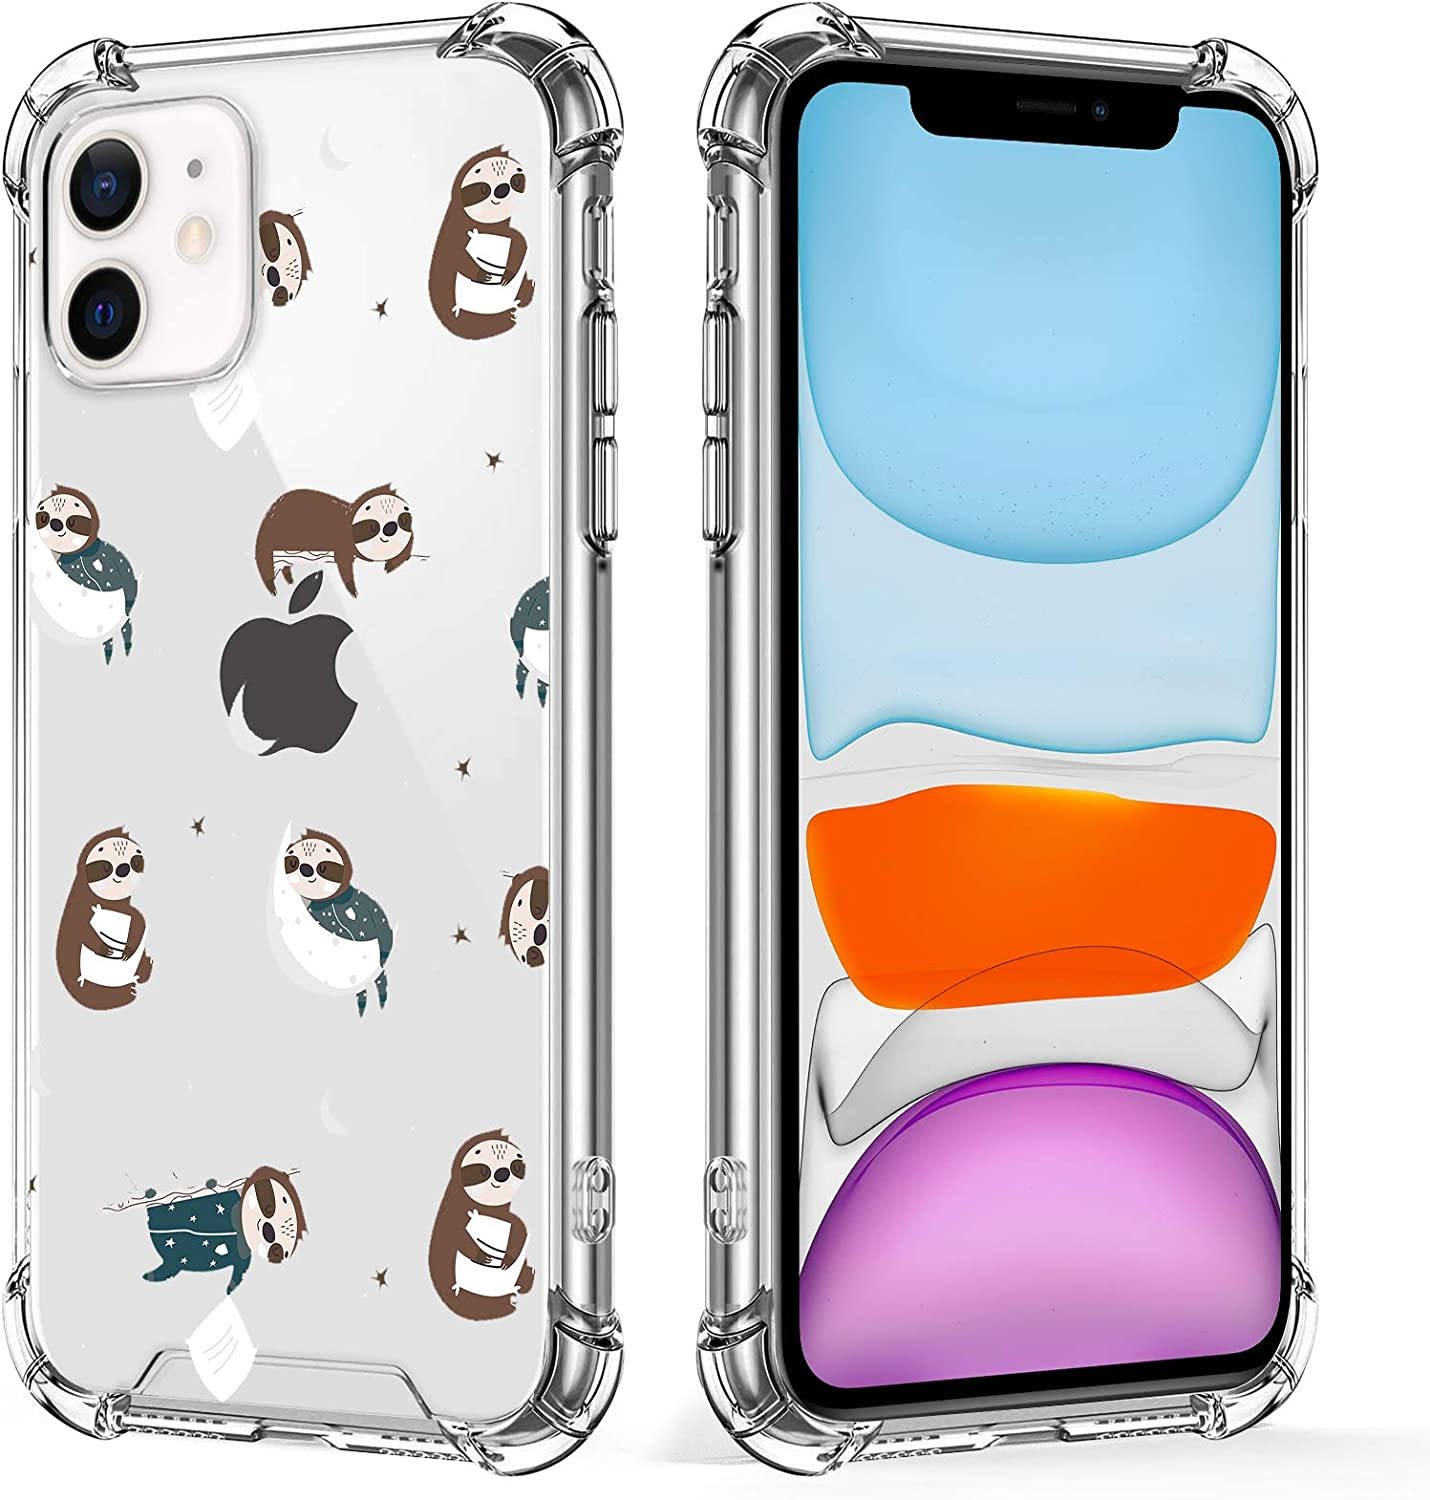 KANGHAR iPhone 7 Plus Case, iPhone 8 Plus Case Sloth Cute Pattern Shockproof Clear Four Corners Cushion Durable Hard PC + Soft TPU Bumper Anti-Scratch Full Body Protection Crystal Cover-5.5inch